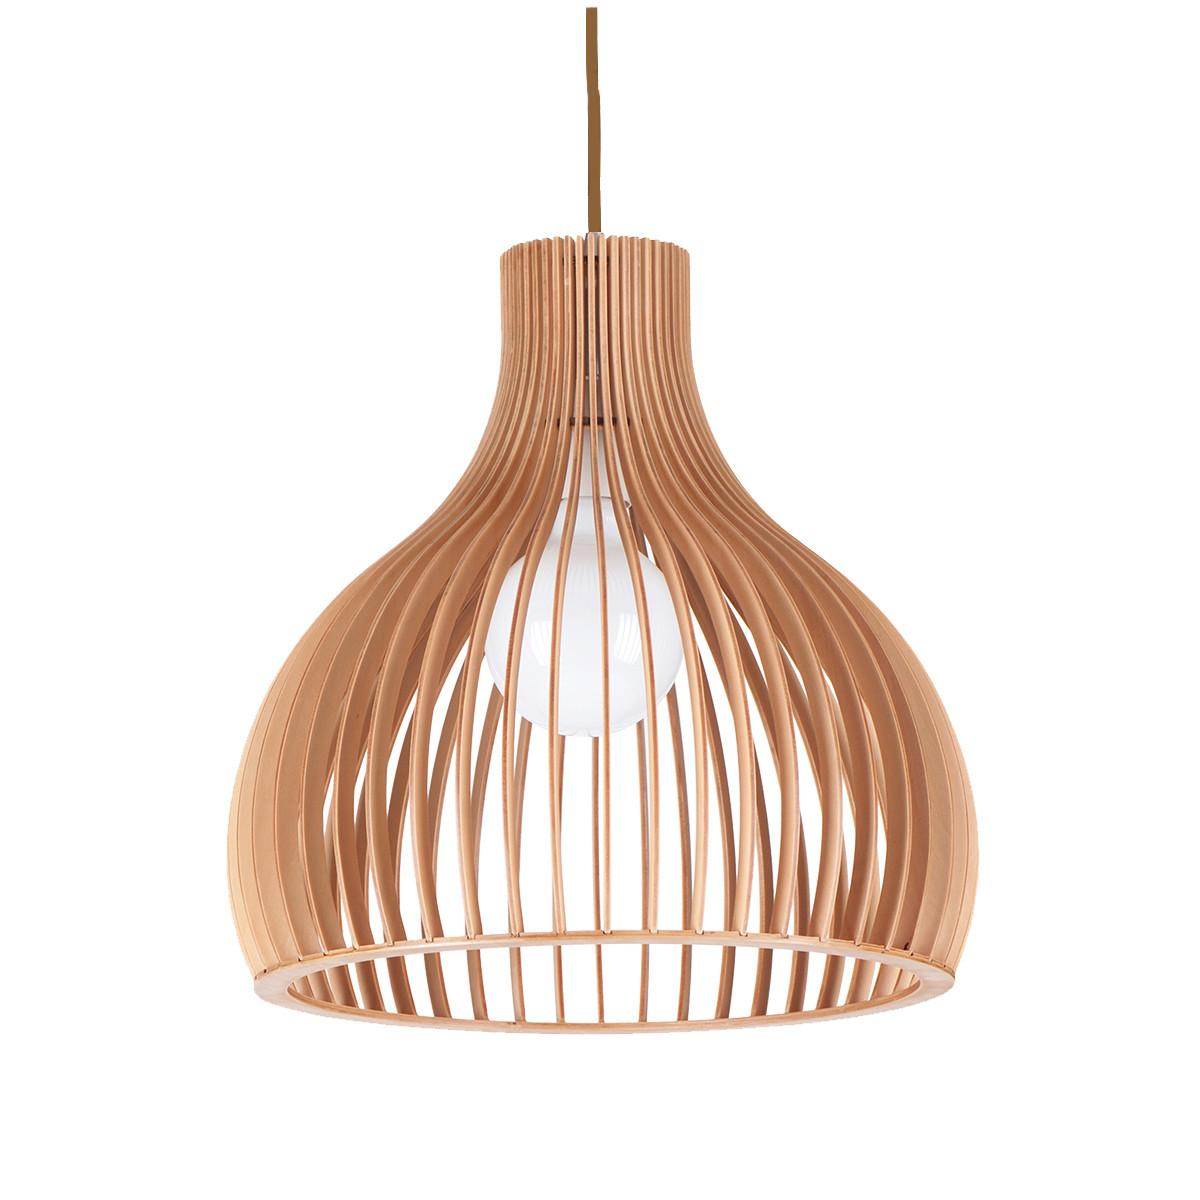 Ganto 350 Wooden Pendant Light P1028ganto350 Led Specials